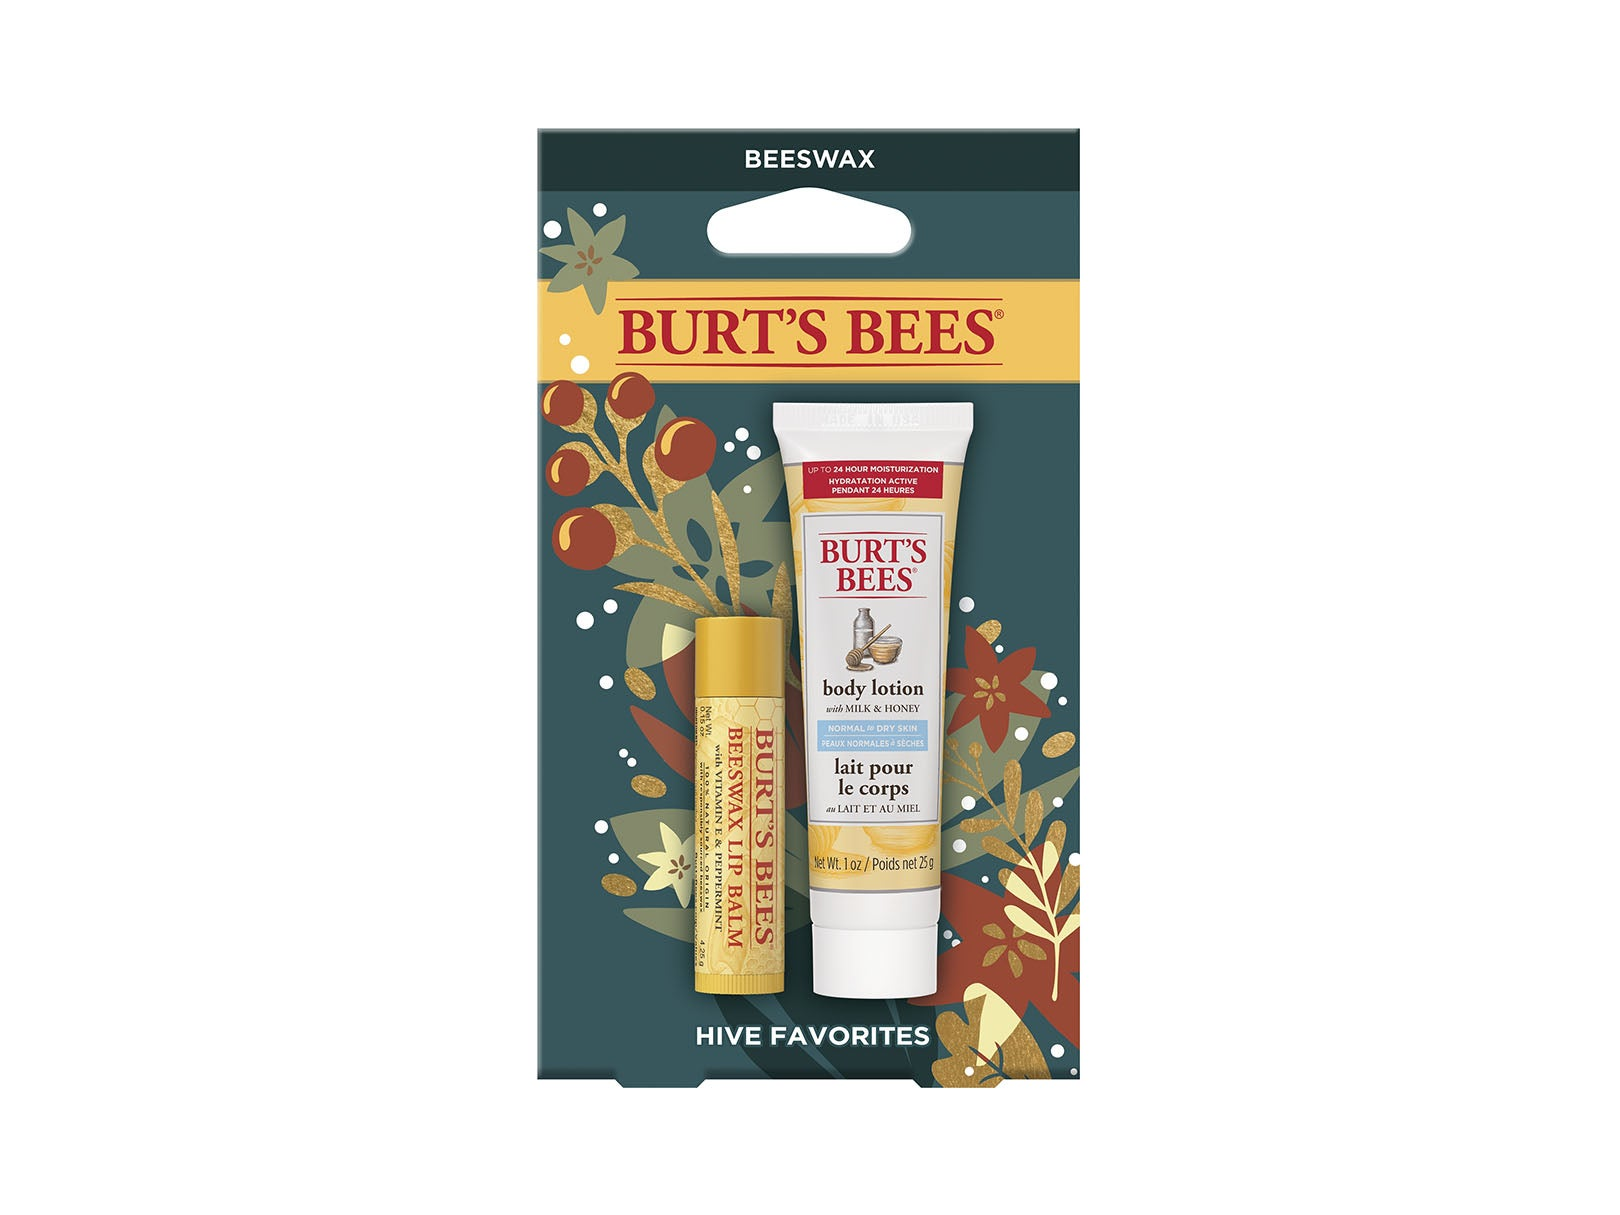 Hive Favorites Display – Beeswax